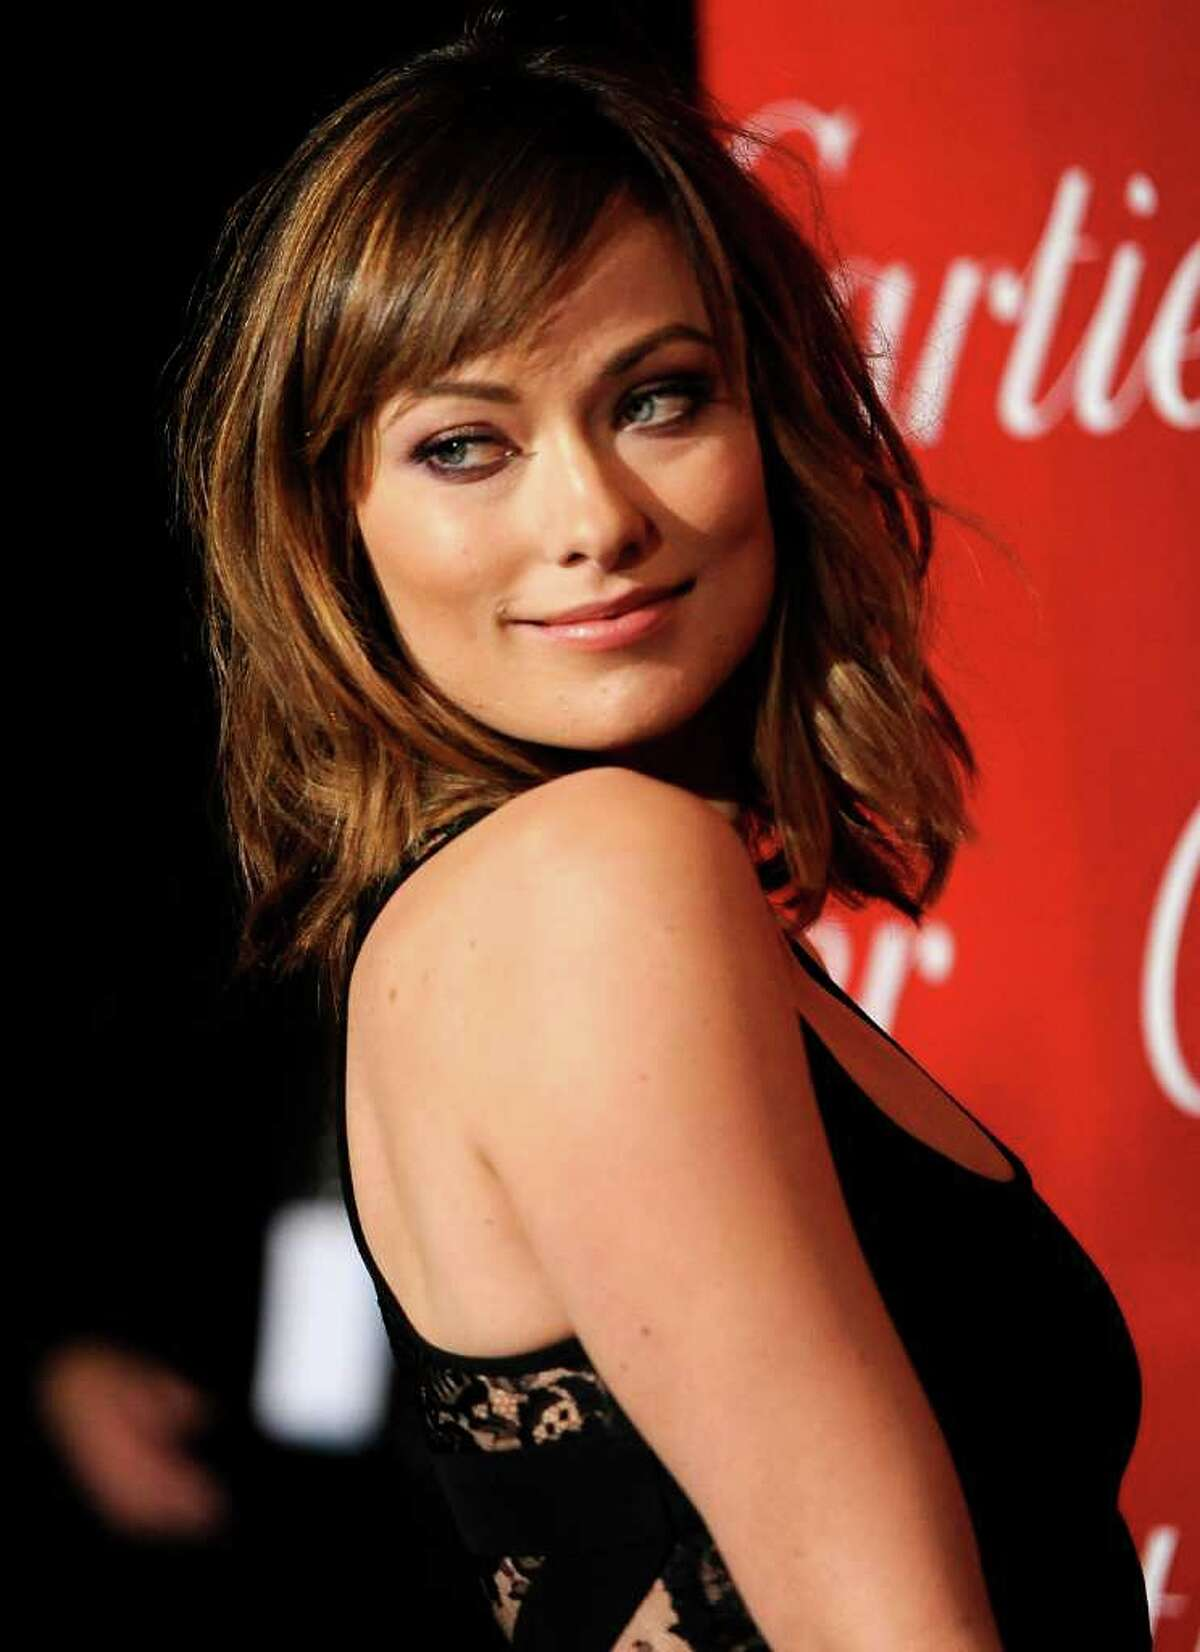 FILE - In this Jan. 7, 2012 file photo, actress Olivia Wilde poses at the 2012 Palm Springs International Film Festival Awards Gala in Palm Springs, Calif. Wilde will host the EIF Revlon Run/Walk in New York on May 5. (AP Photo/Chris Pizzello, file)